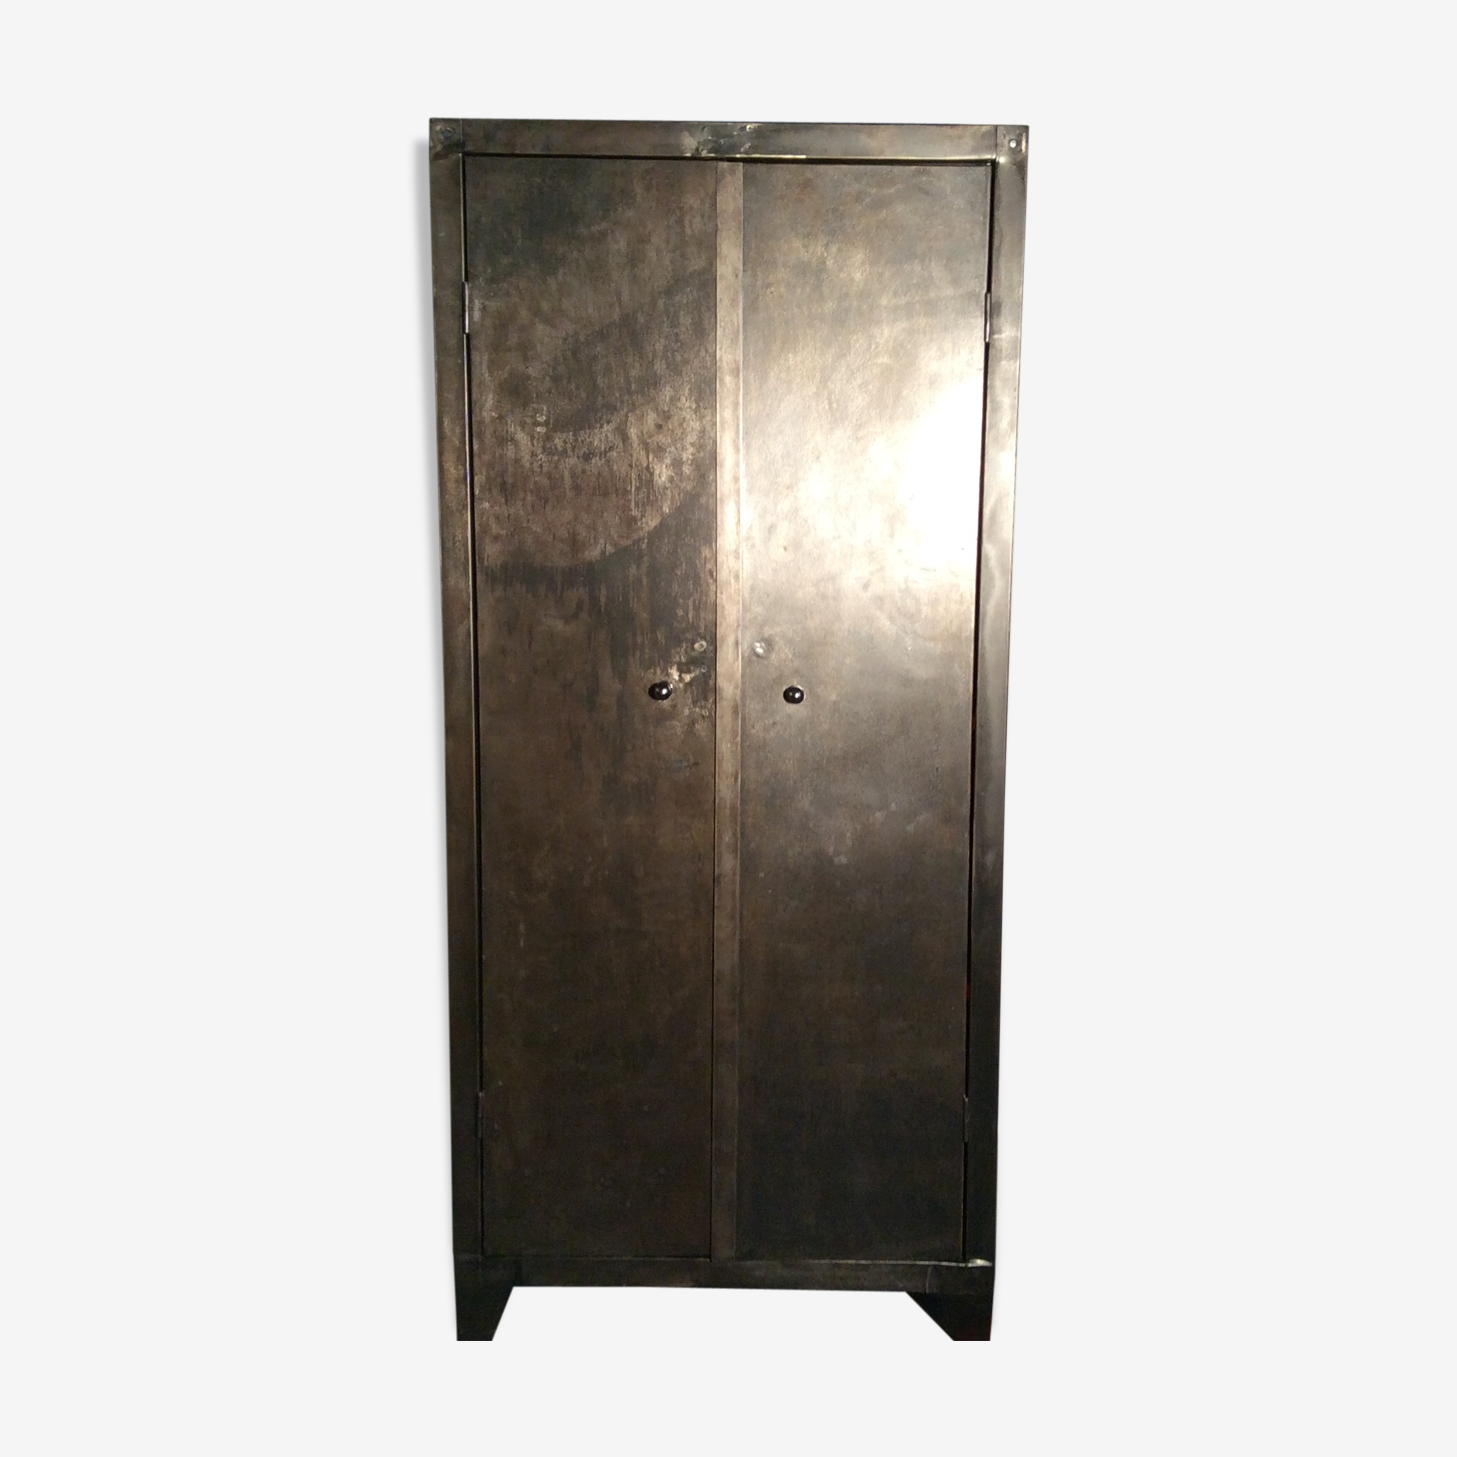 armoire metallique porte coulissante occasion. Black Bedroom Furniture Sets. Home Design Ideas